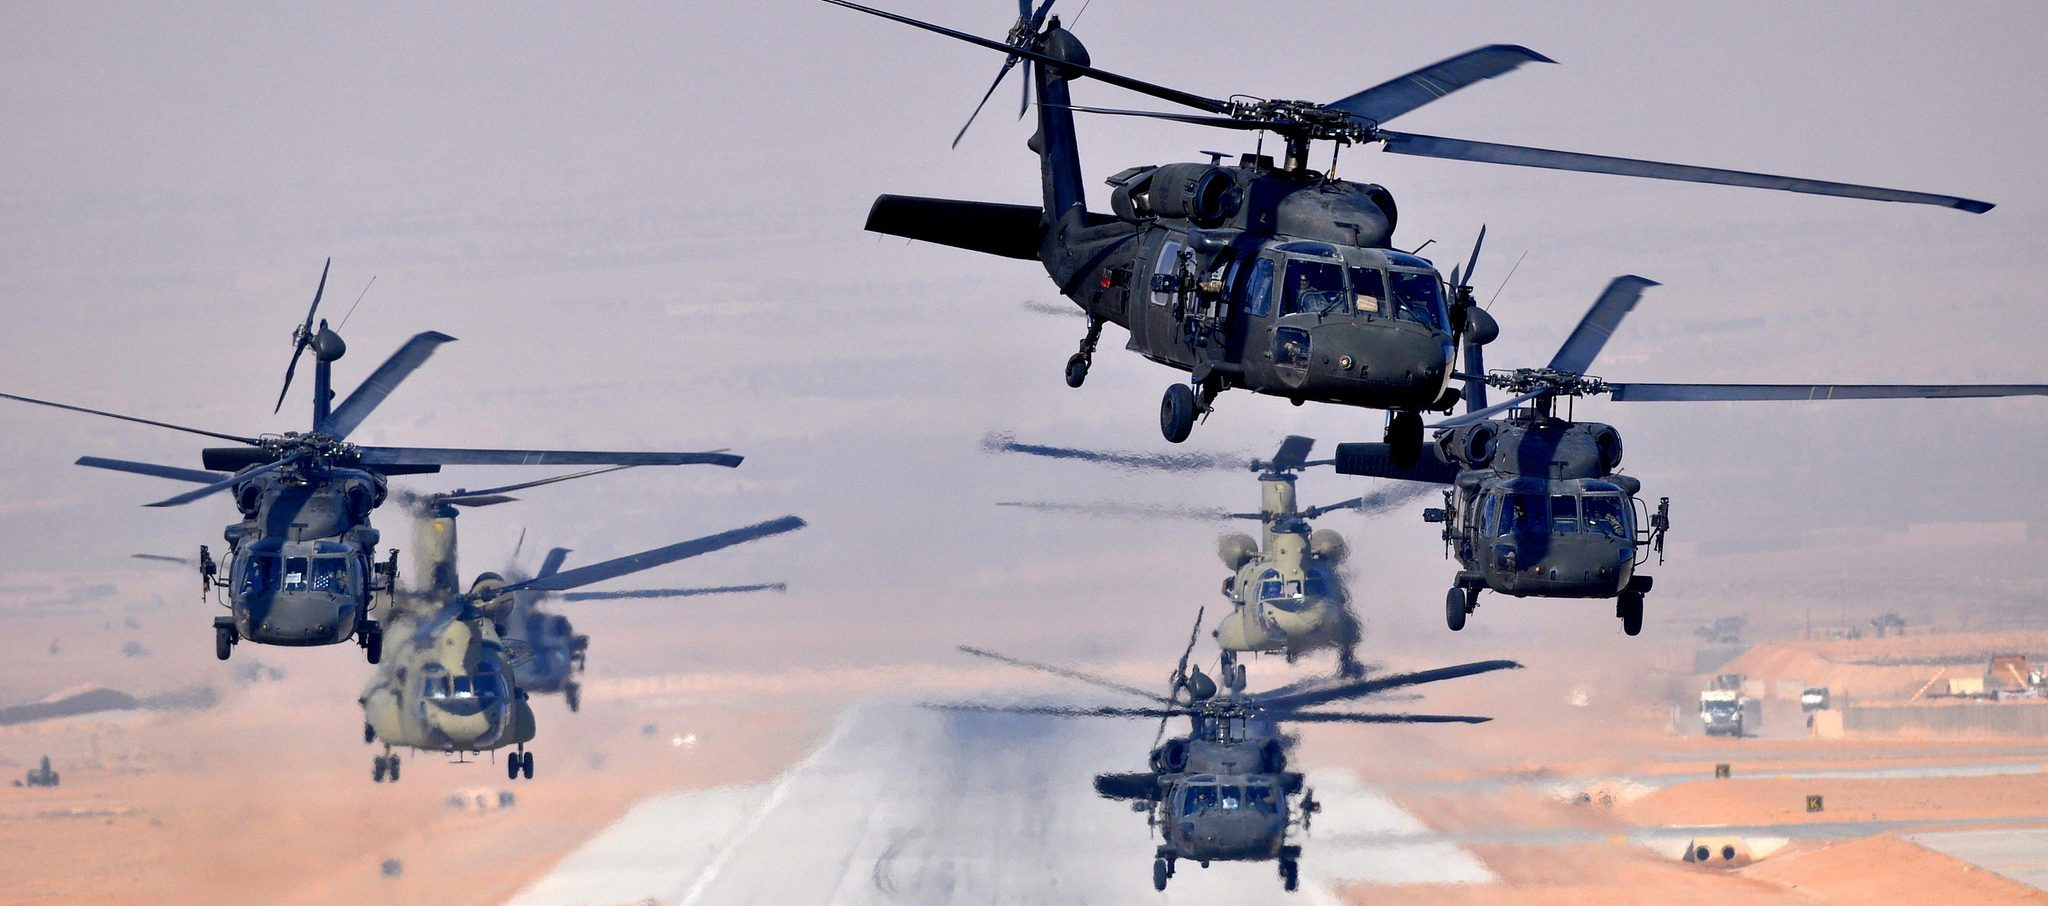 Six UH-60L Black Hawks and two CH-47F Chinooks, assigned to Task Force Brawler, 4th Battalion, 3rd Aviation Regiment, Task Force Falcon, simultaneously launch a daytime mission Jan. 18 from Multinational Base Tarin Kowt. (US Army official image)